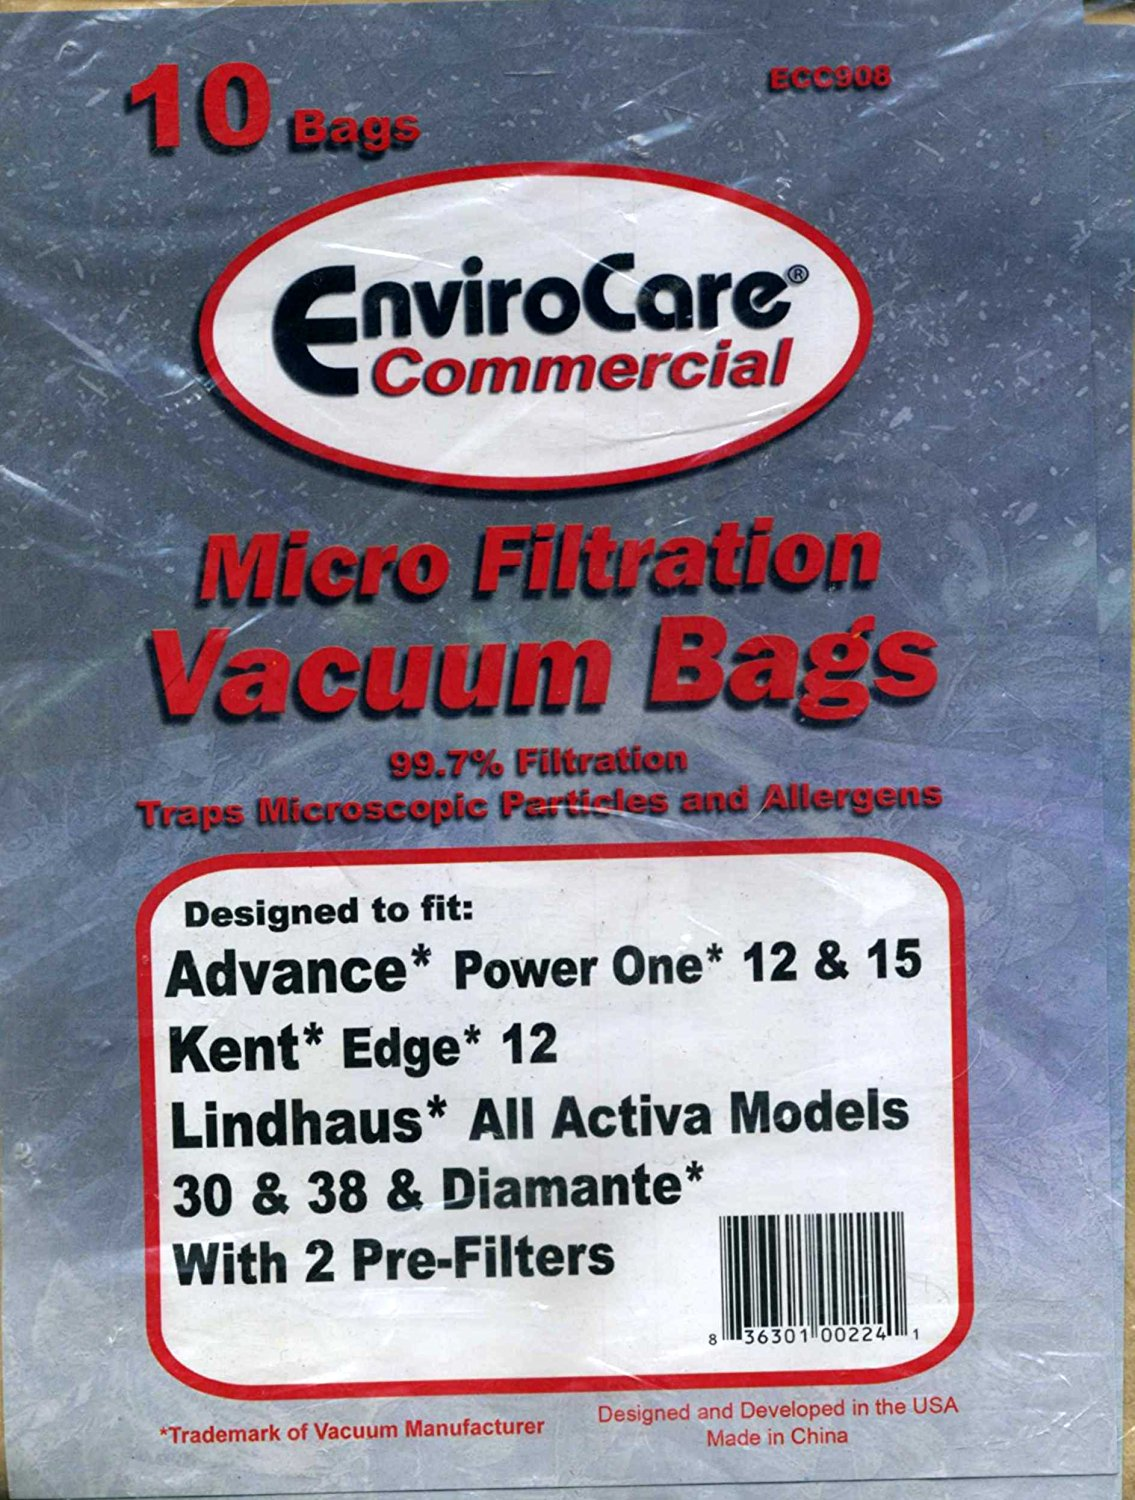 Micro Filtration Vacuum Bags 10 Count EnviroCare Commercial 99.7% Filtration